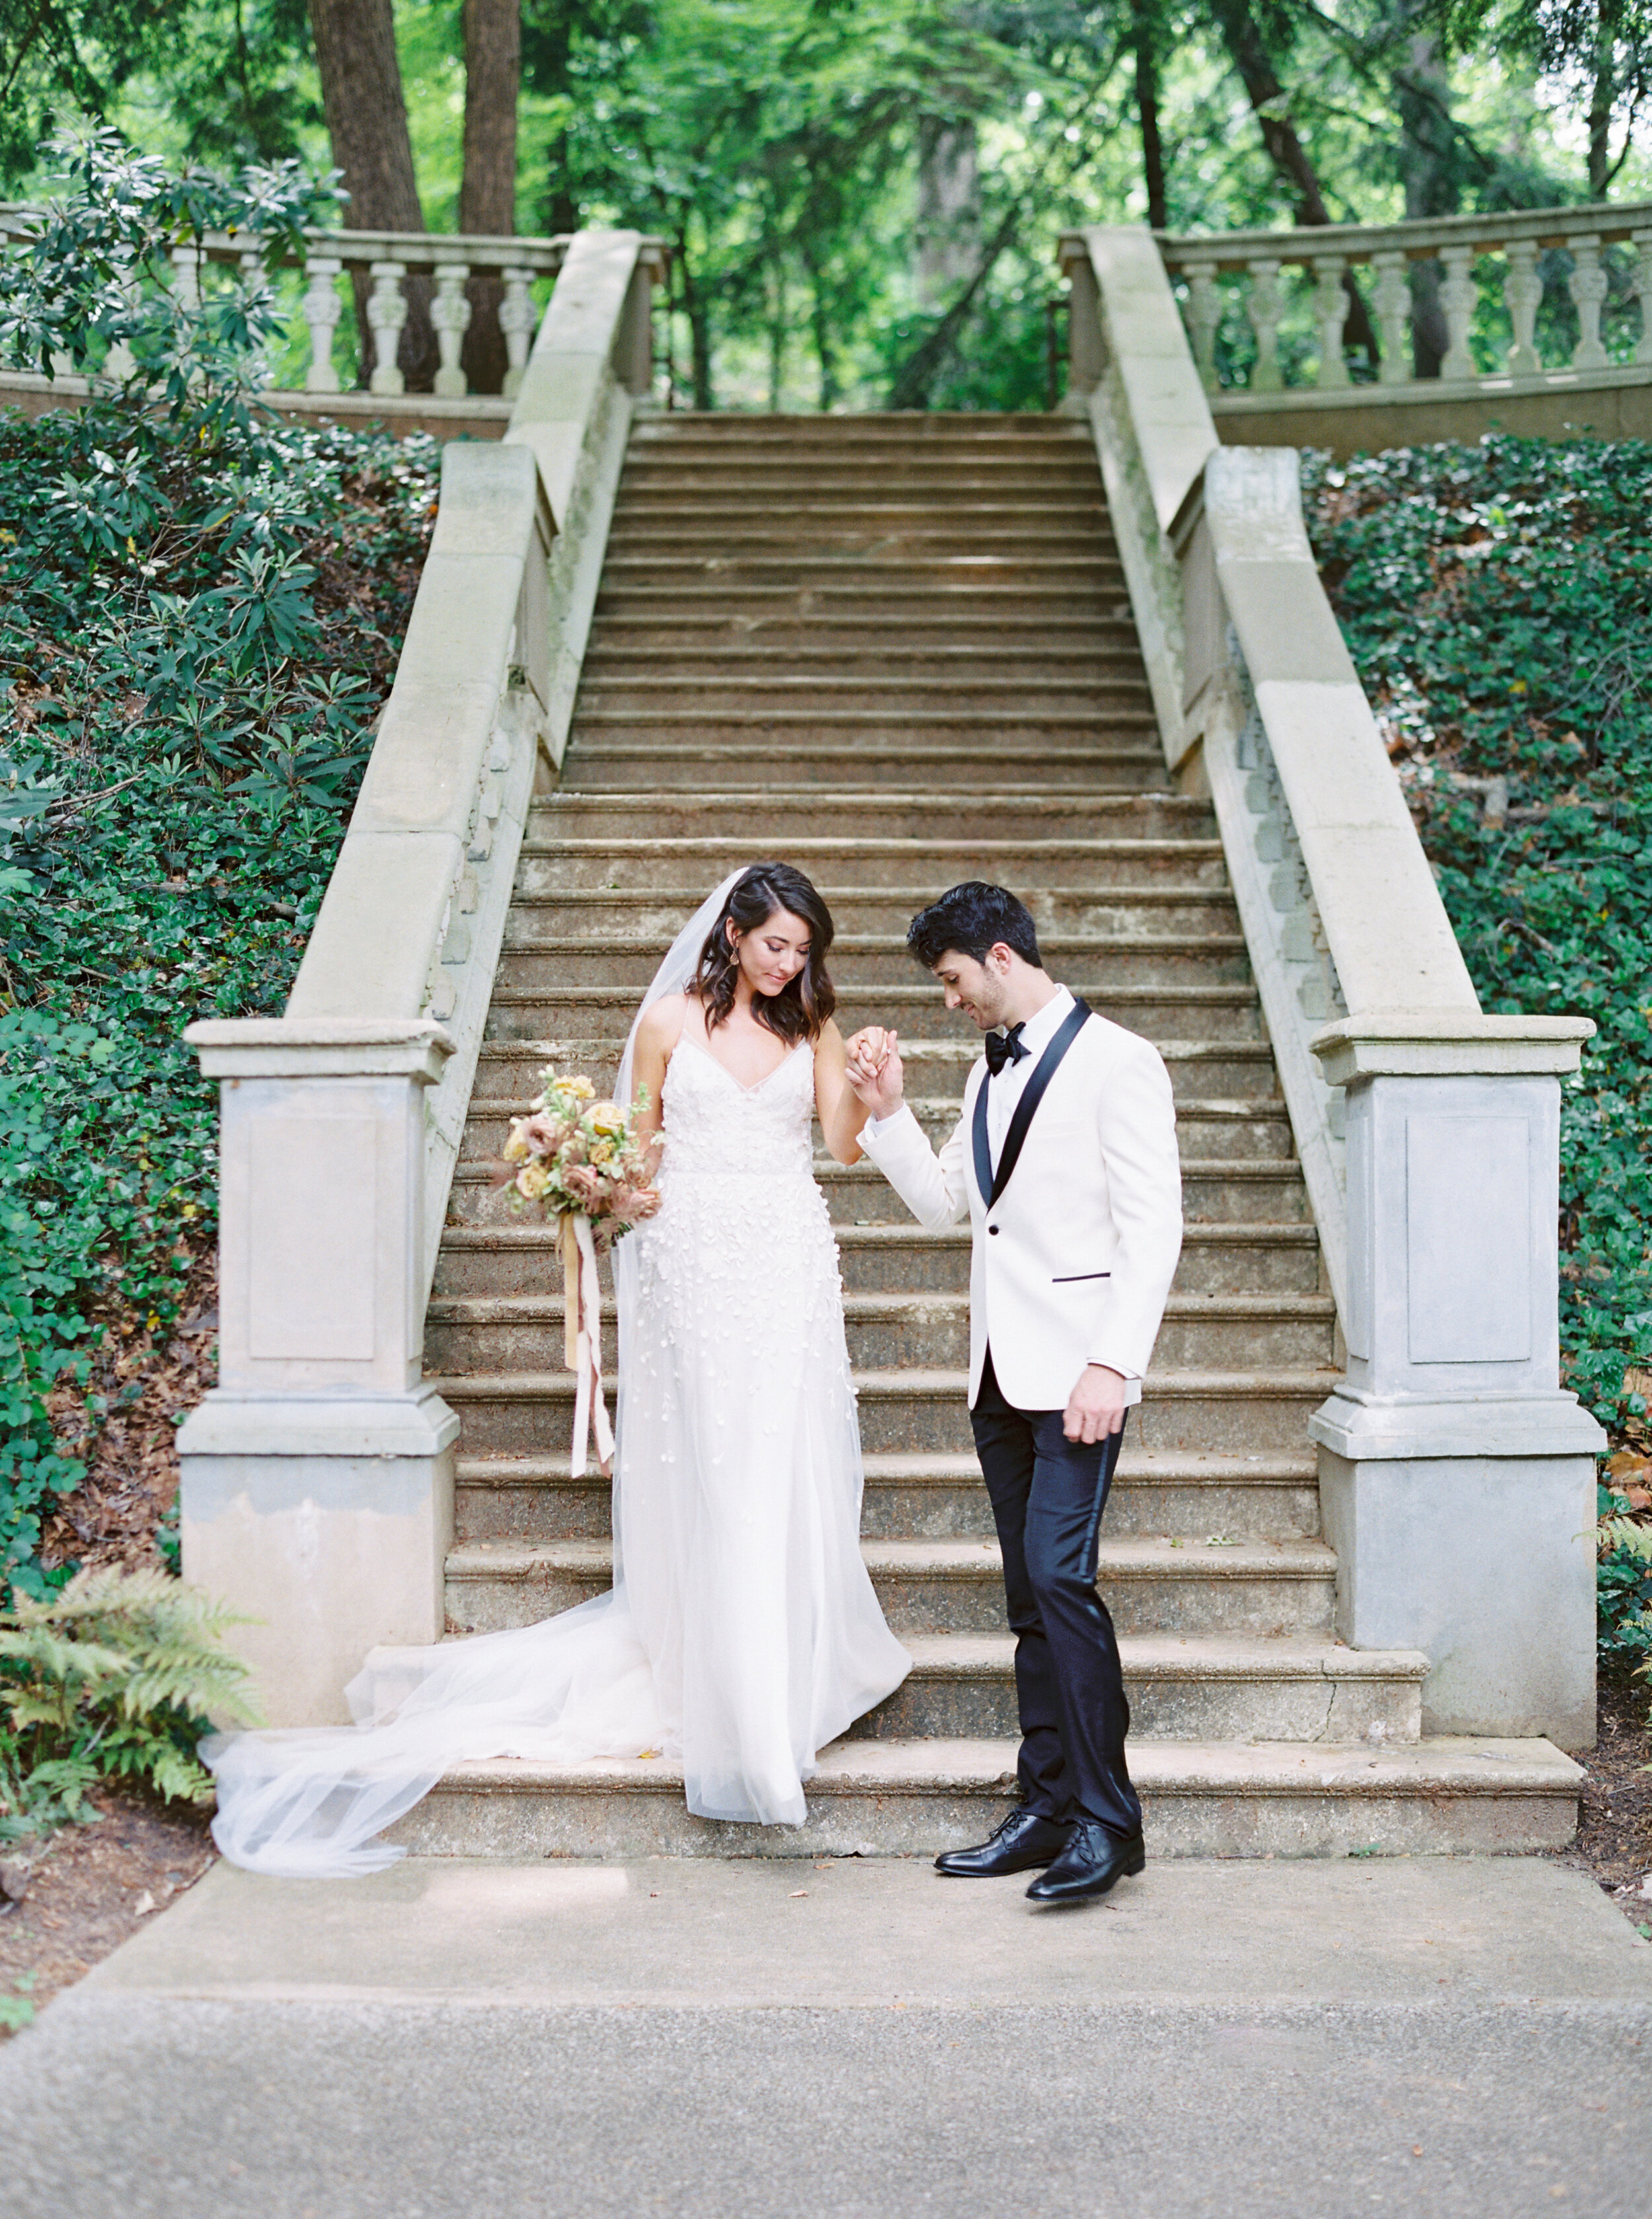 Cator-Woolford-Gardens-Kristin-Cody-Atlanta-Wedding-Photographer-Fine-Art-Film-90.jpg